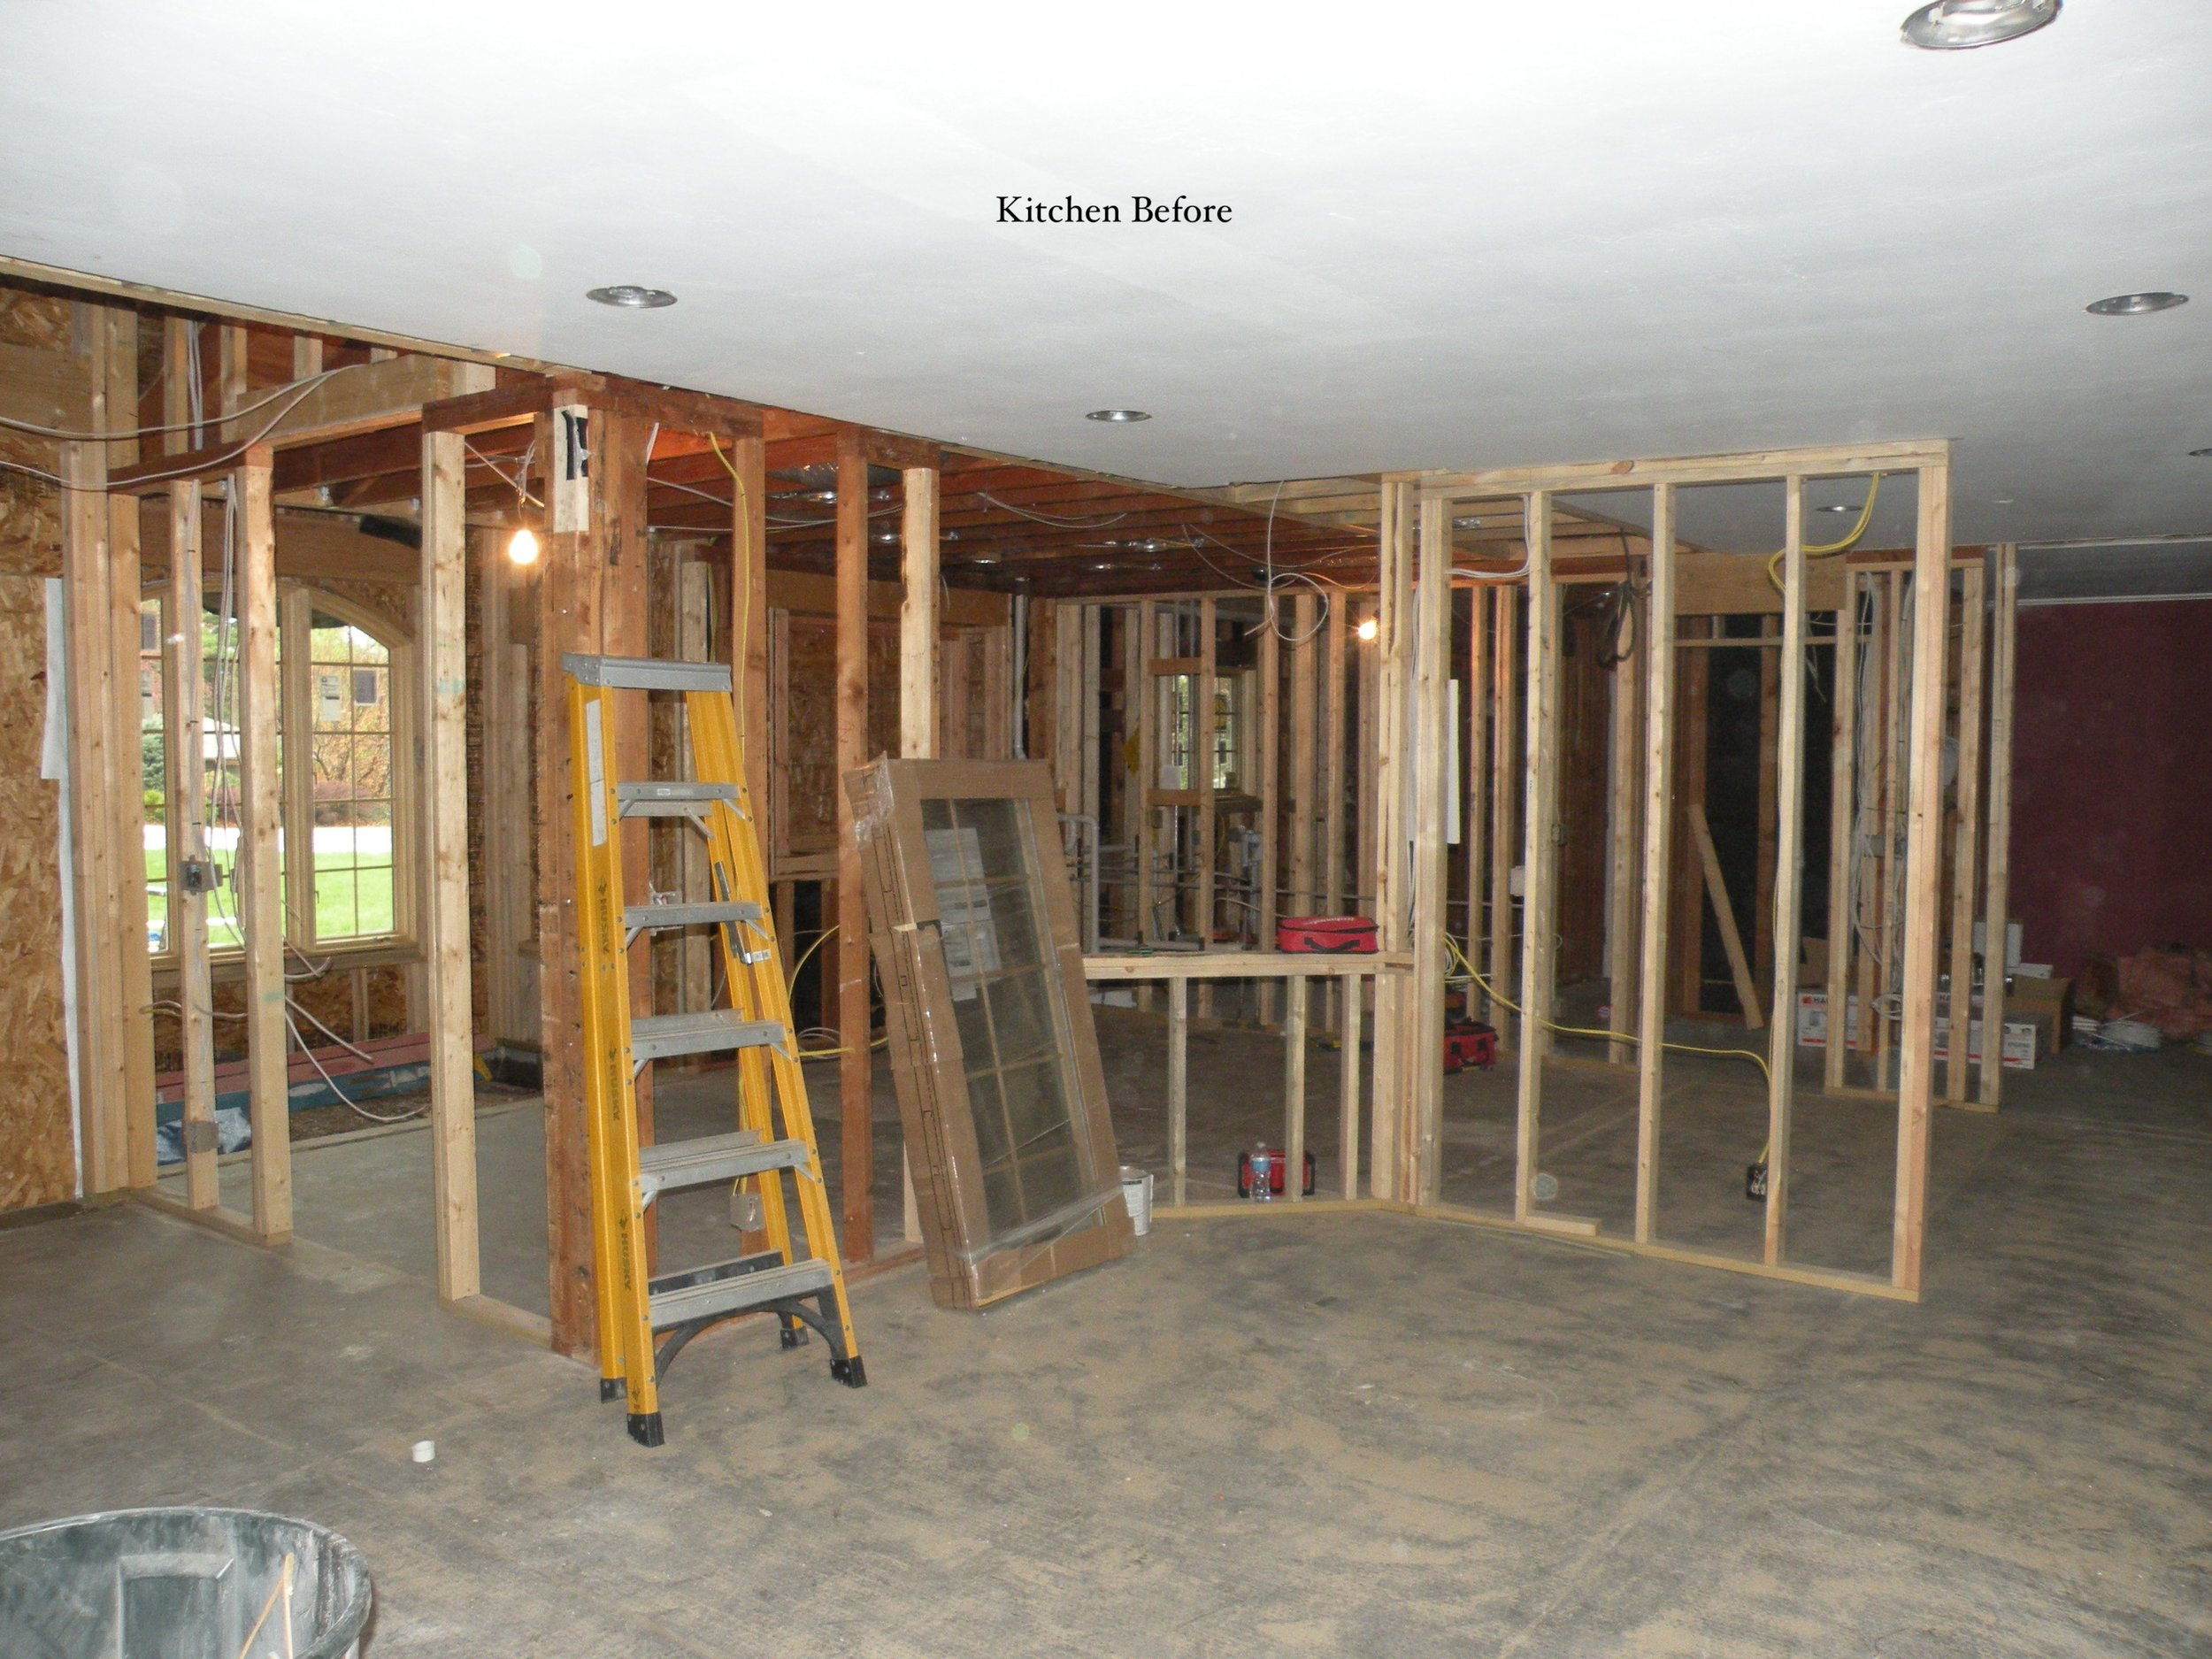 0004 Before Living Room Looking into Kitchen.JPG